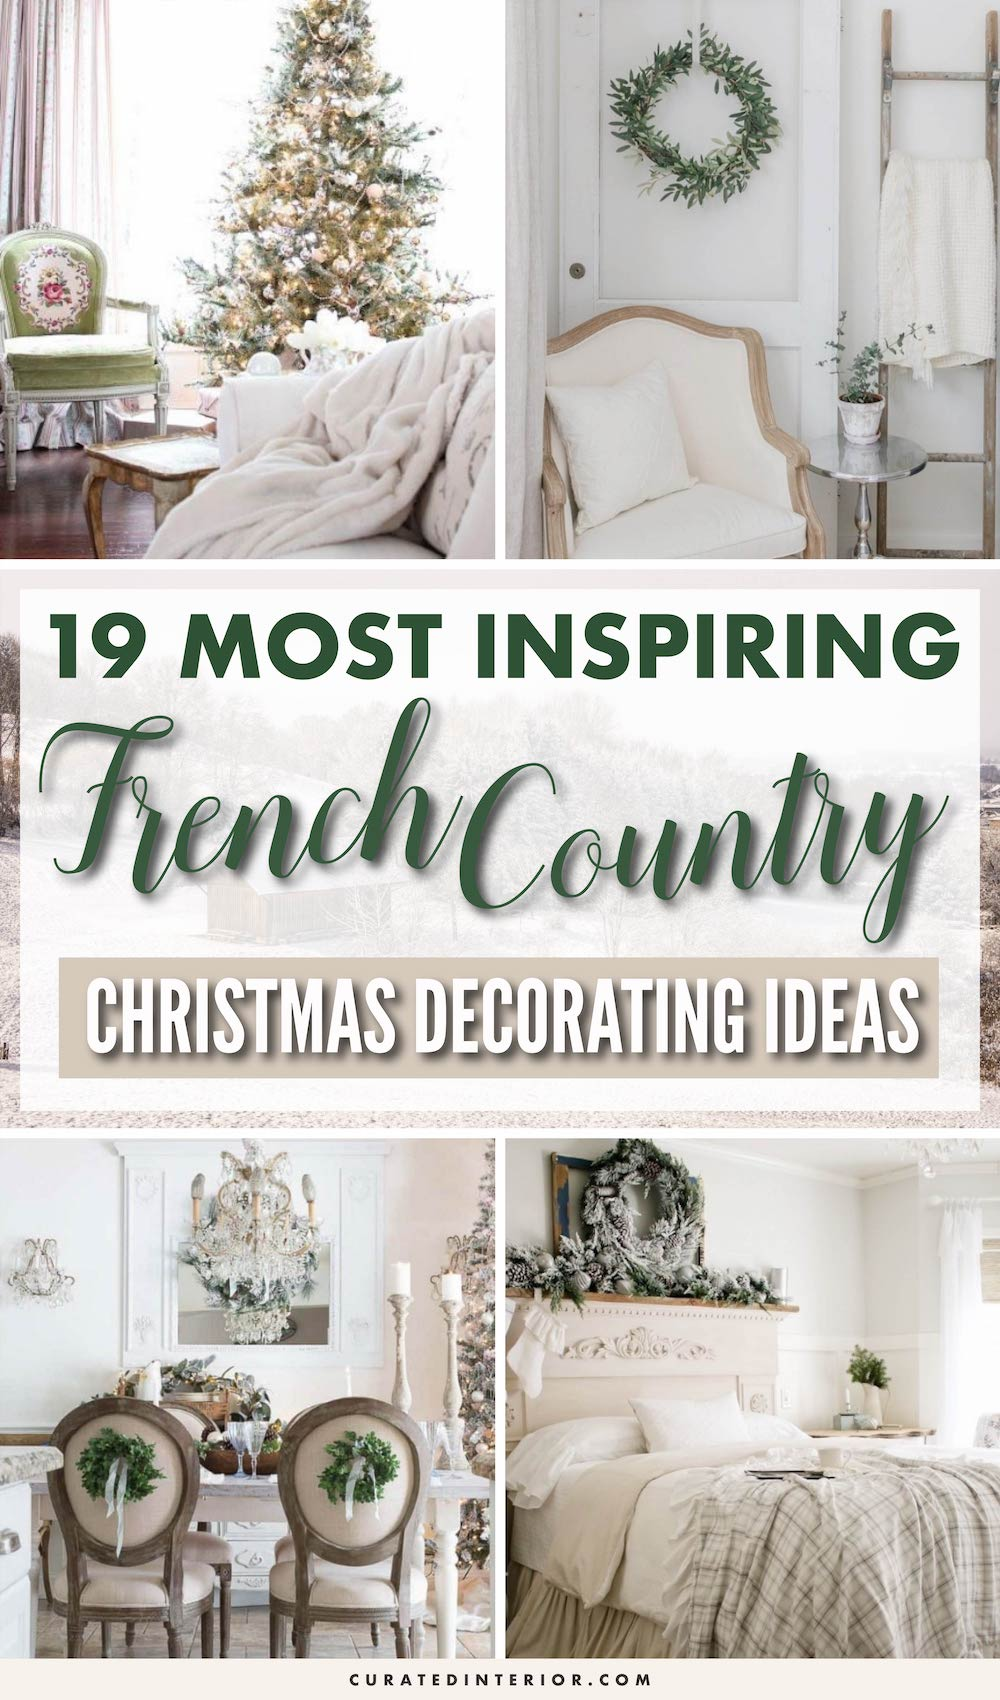 19 Most Inspiring French Country Christmas Decorating Ideas #FrenchCountry #FrenchChristmas #FrenchCountryDecor